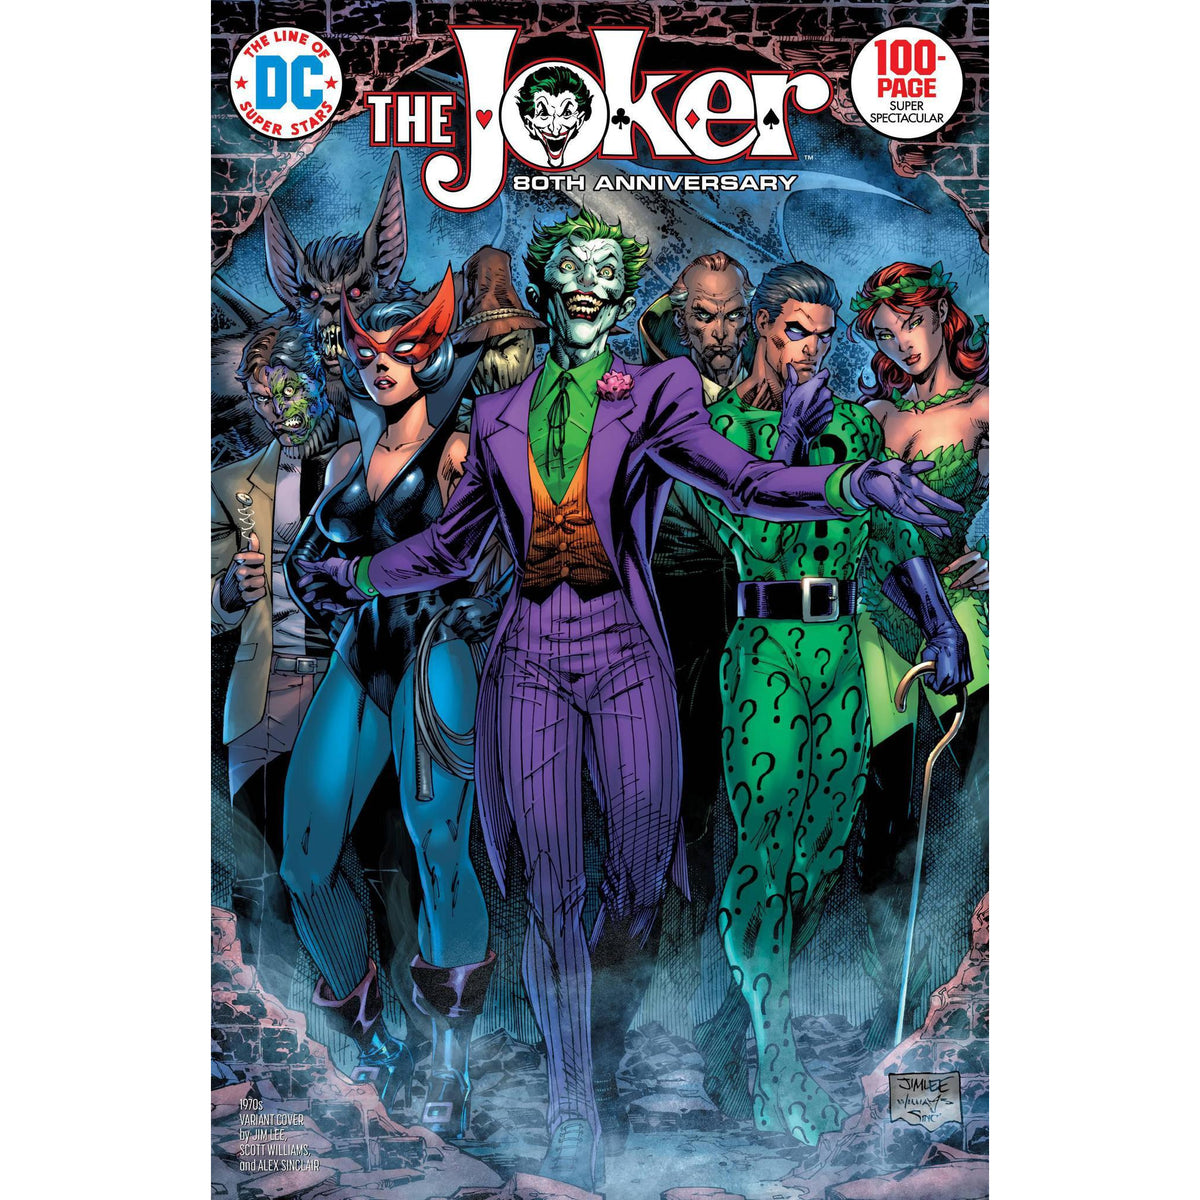 JOKER 80TH ANNIVERSARY 100 PAGE SUPER SPECTACULAR #1 1970s JIM LEE VARIANT COVER